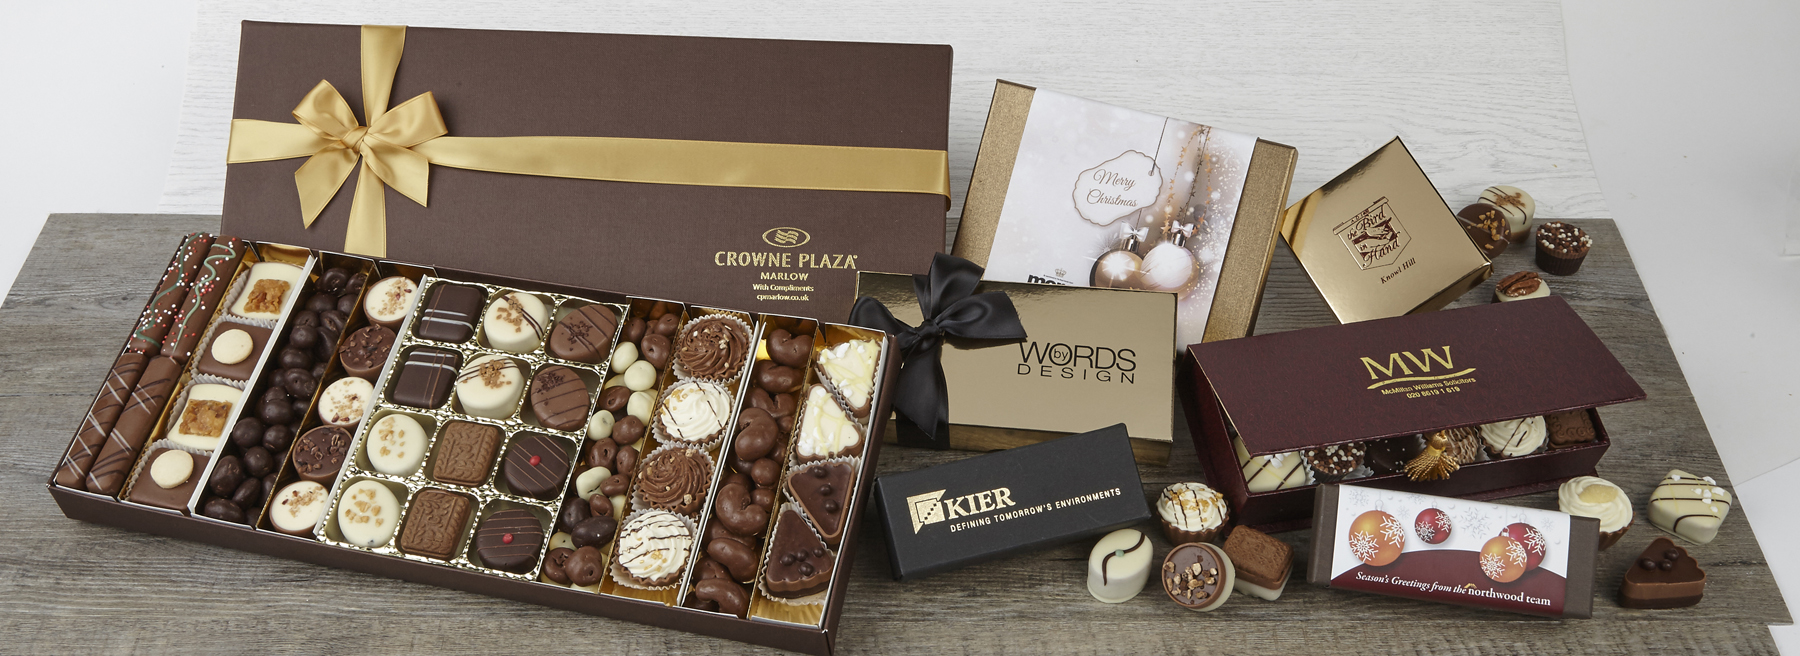 personalised-boxes-of-chocolates-3.jpg